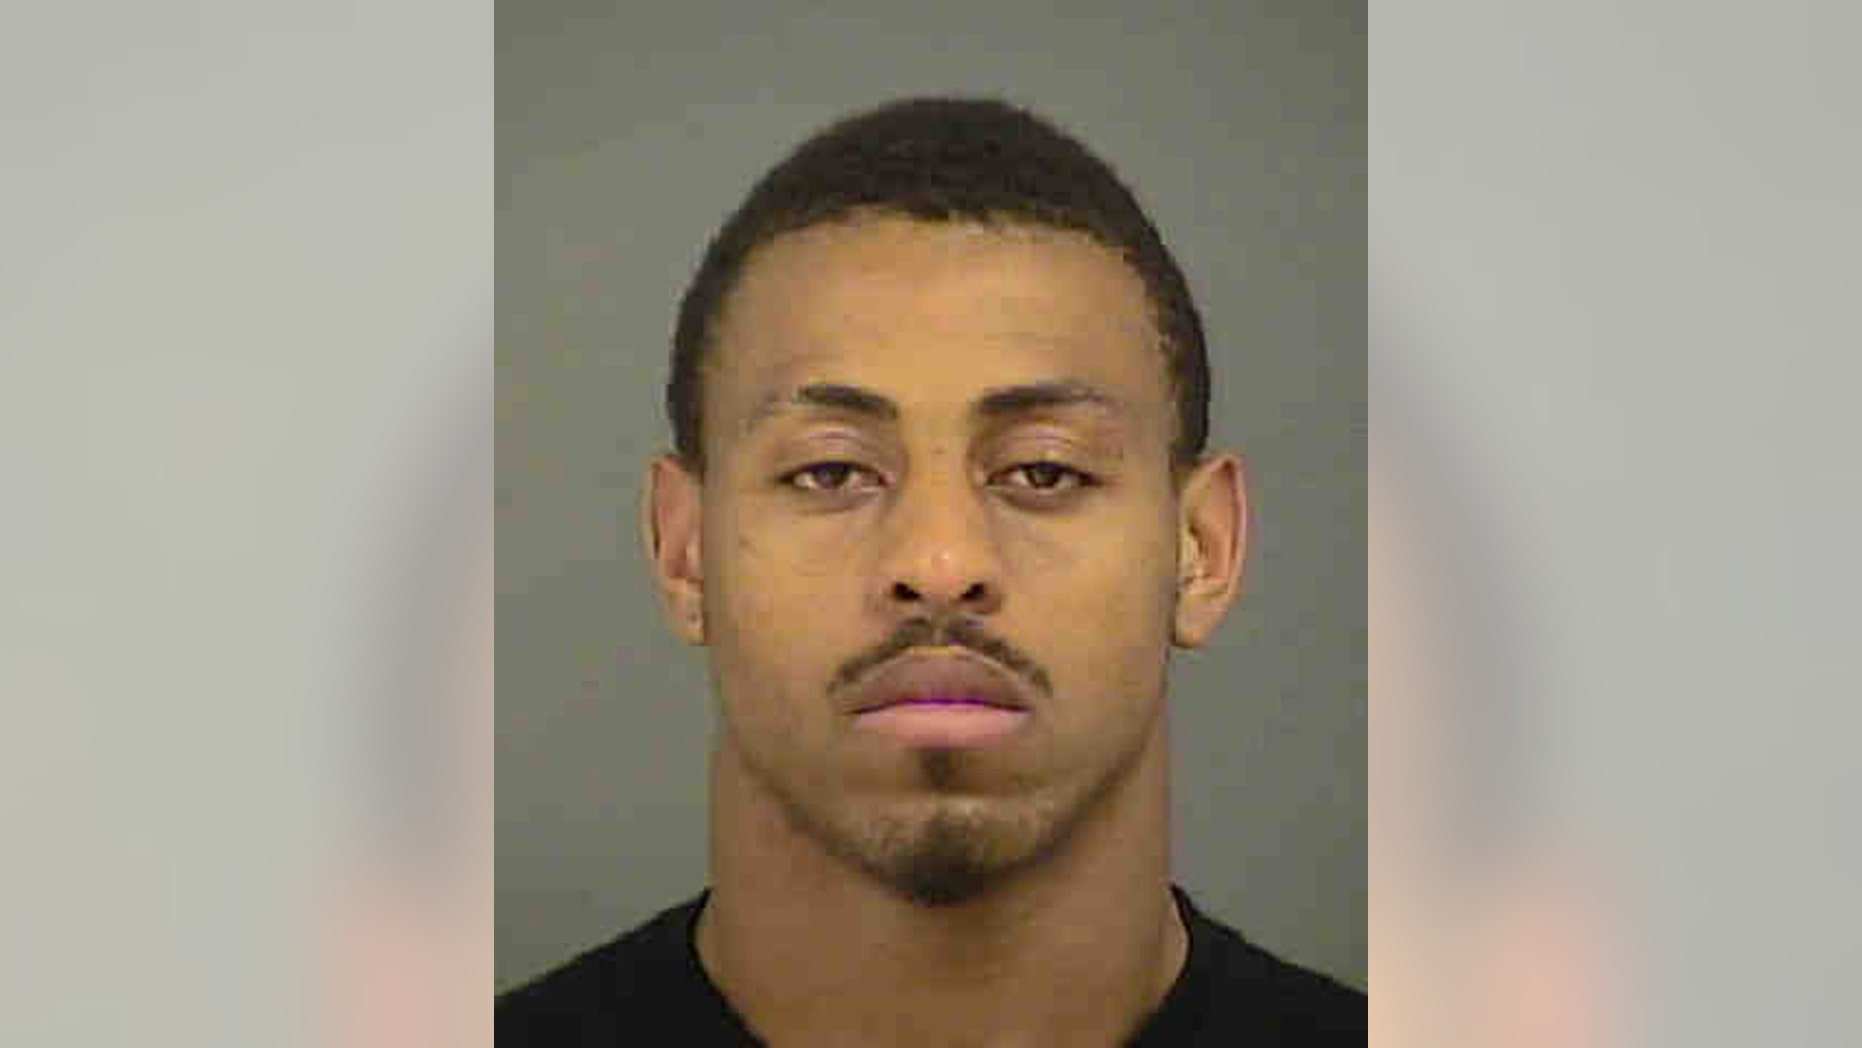 This photo provided by the Mecklenburg County Sheriff's Department shows Carolina Panthers defensive end Greg Hardy after his arrest in Charlotte, N.C., Tuesday, May 13, 2014. Hardy was arrested for assault on a female and communicating threats, according to Charlotte Mecklenburg police. Hardy turned himself into Mecklenburg County police on Tuesday morning. (AP Photo/Mecklenburg County Sheriff's Office)